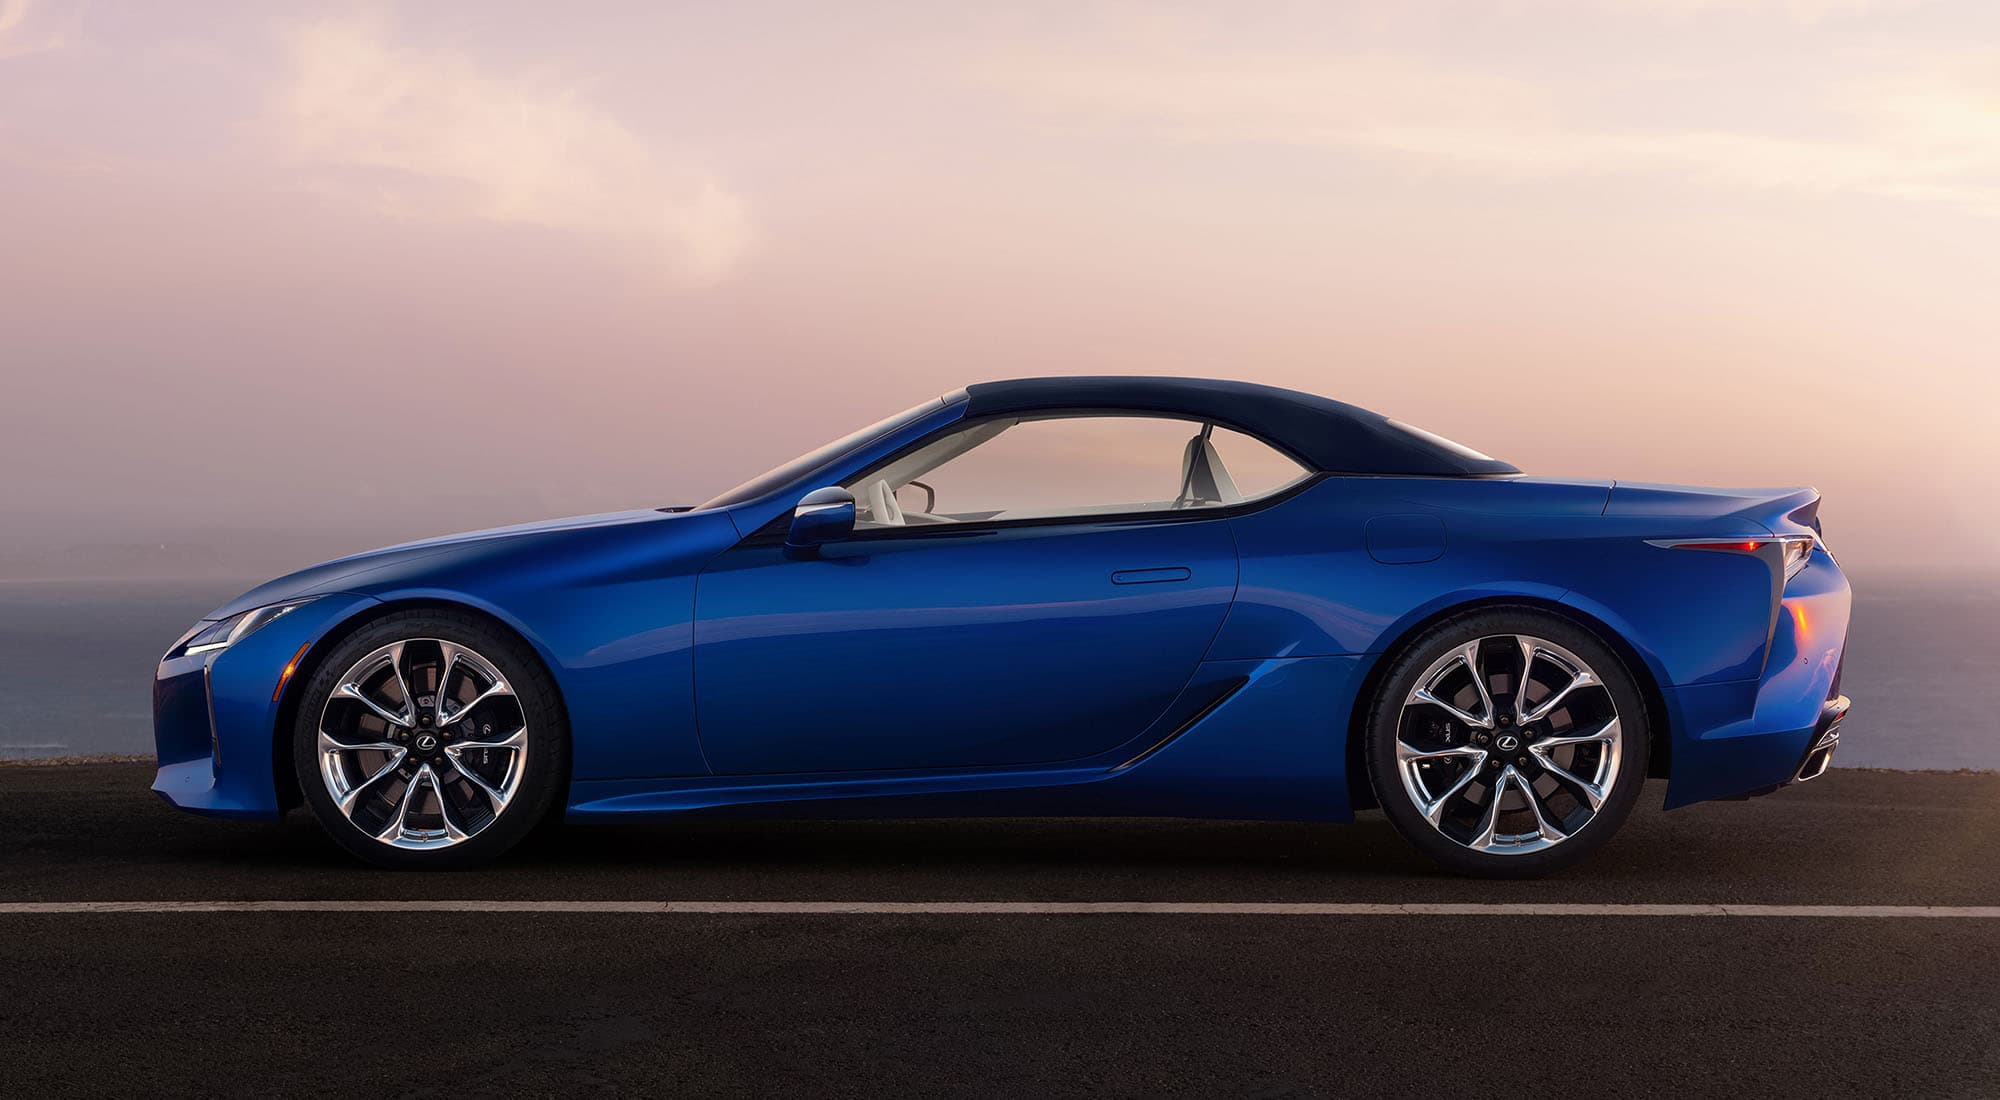 2020 Lexus LC 500 Convertible Profile